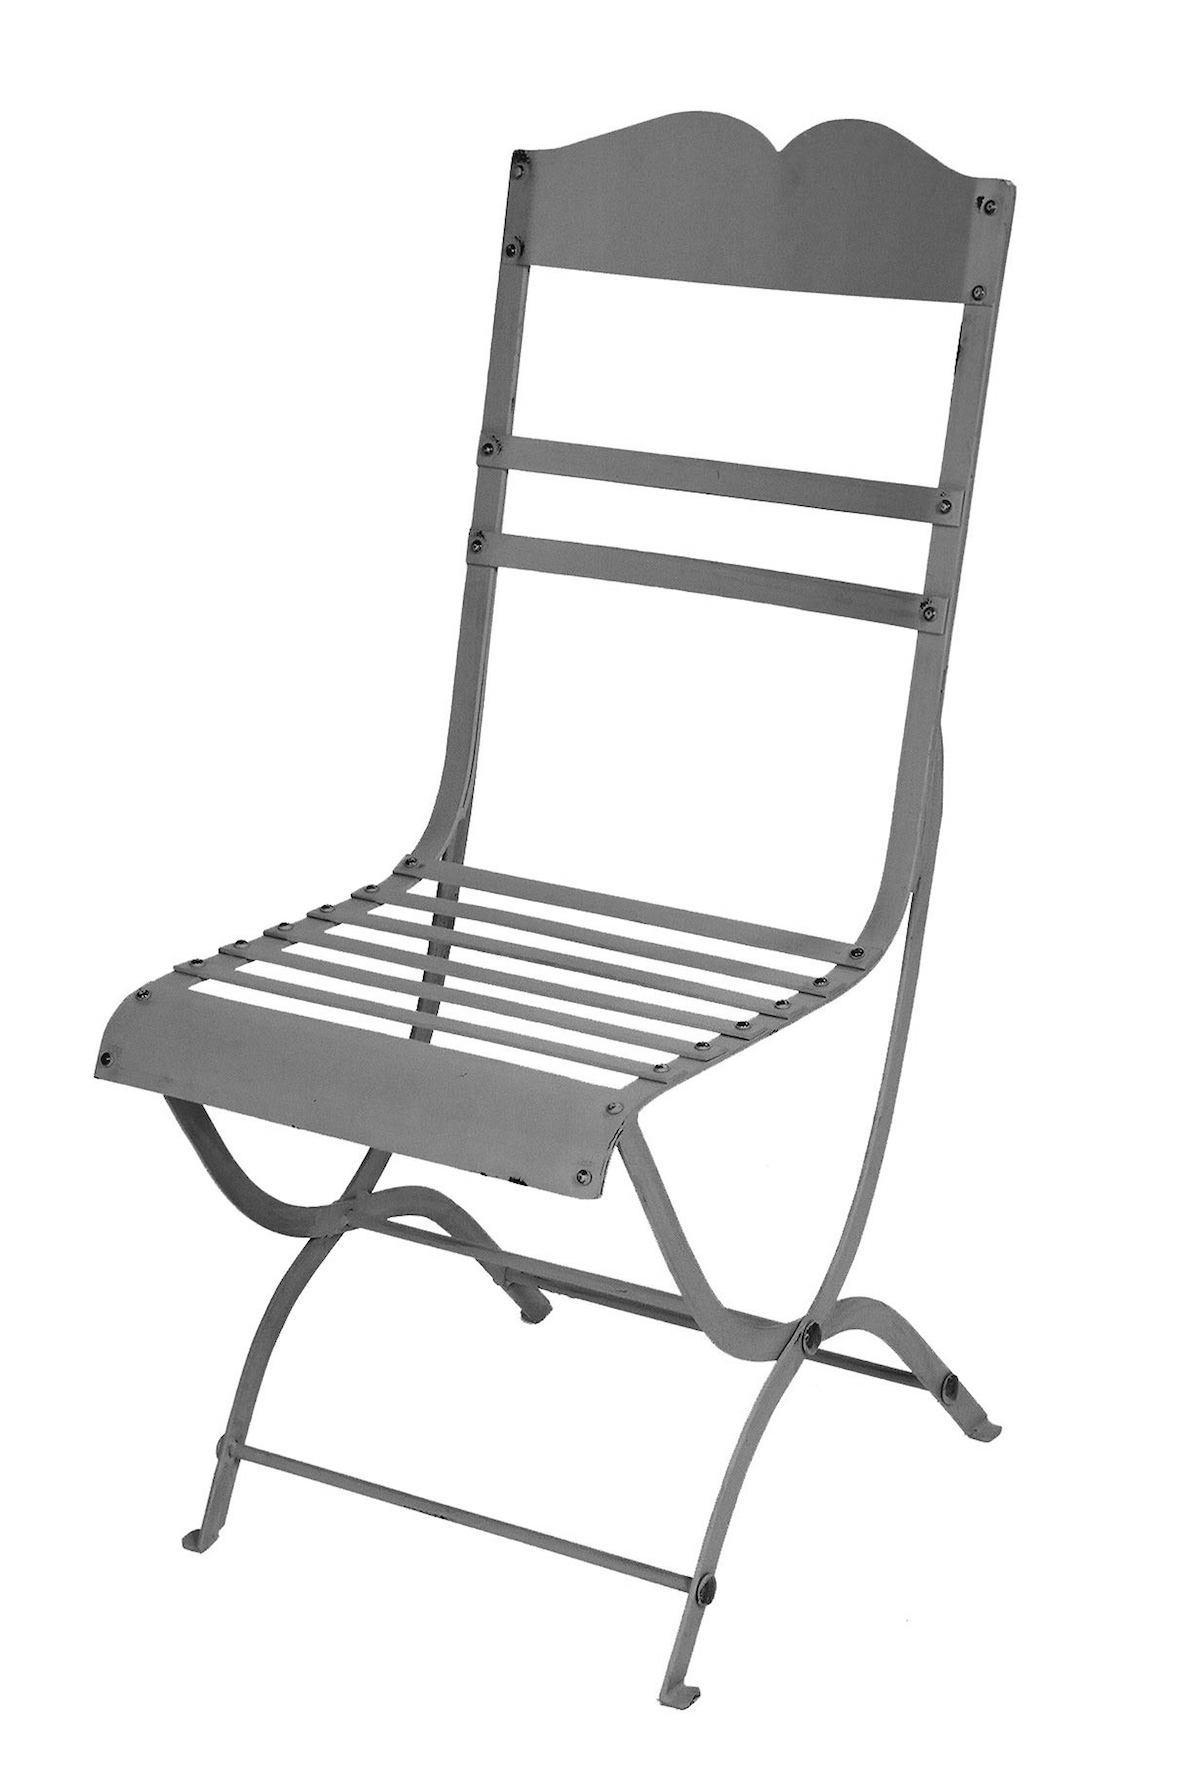 Chair Steel Outdoor Garden French Provincial Le Forge